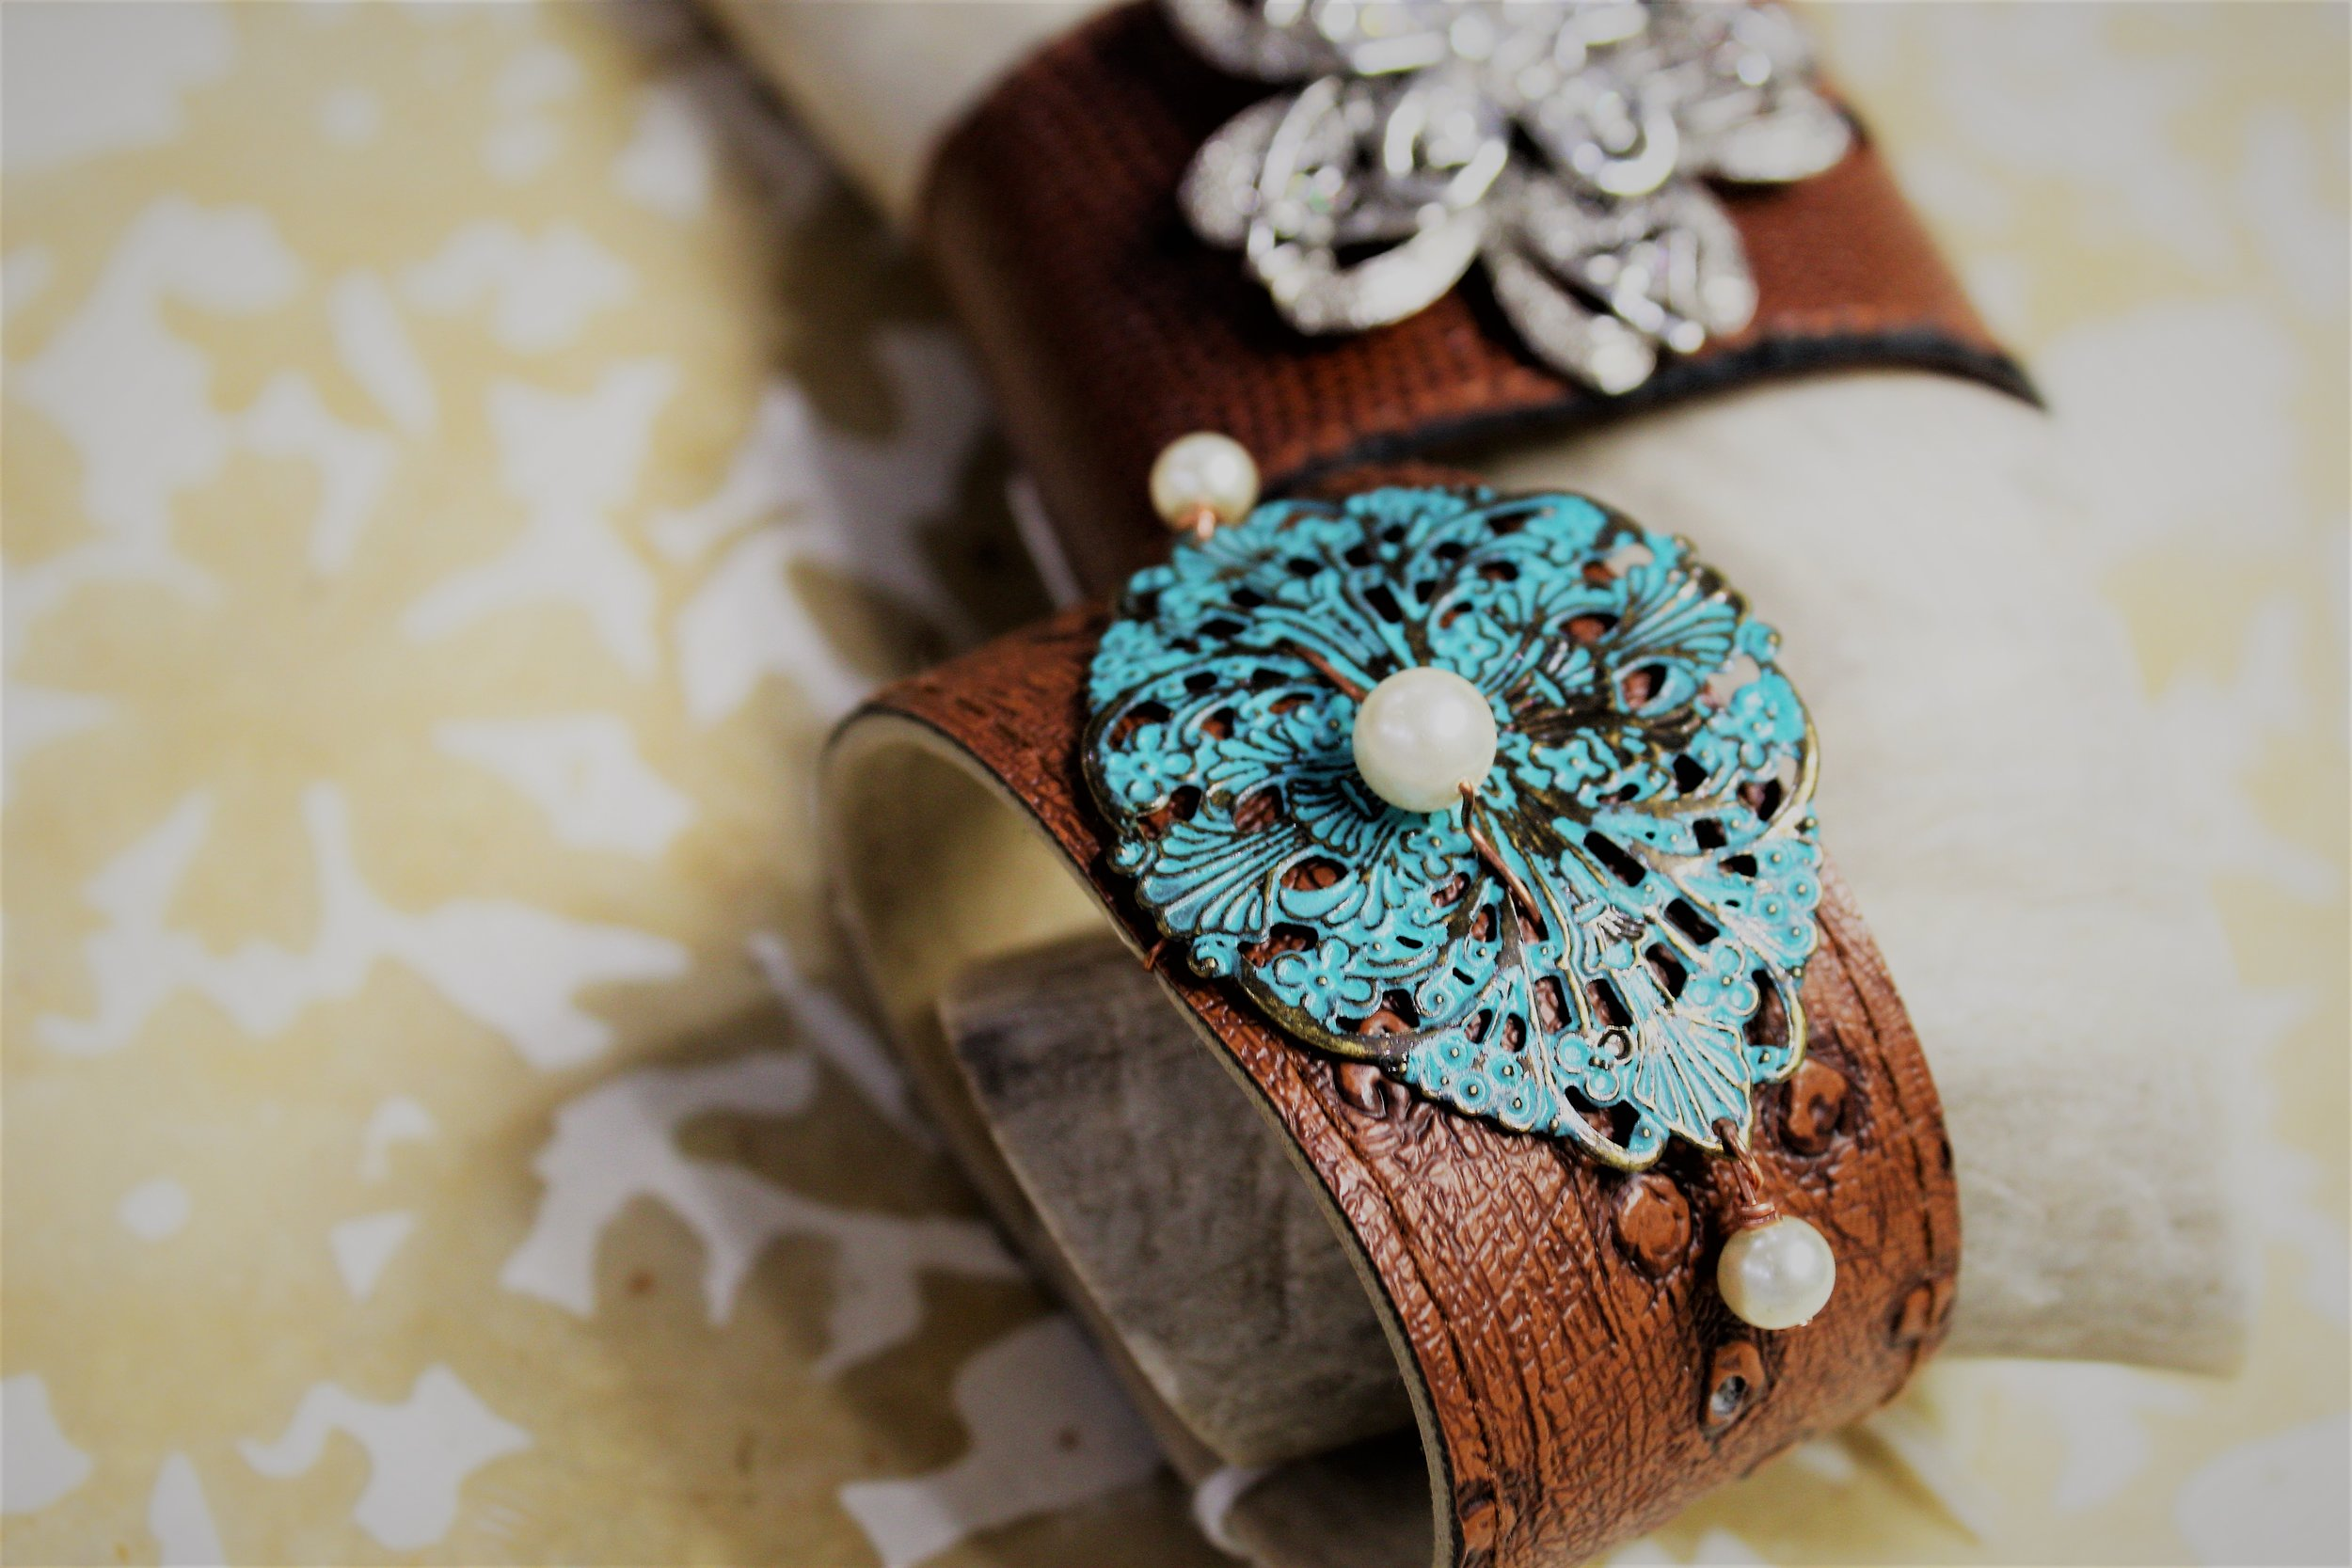 Leather cuffs by High Strung Jewelry, priced at $25. Jill Hernandez, jewelry designer uses a mix of genuine stones, Swarovski crystal and glass bead for majority of her pieces. We fell in love with these leather cuffs, and they worked perfectly to merchandise on our little deer antler and opaque floral papers. Stop in to see her other beautiful bracelets ($15) and earrings, (1 for $7 or 2 for $10) and her uniquely beaded necklaces ($22-$35).